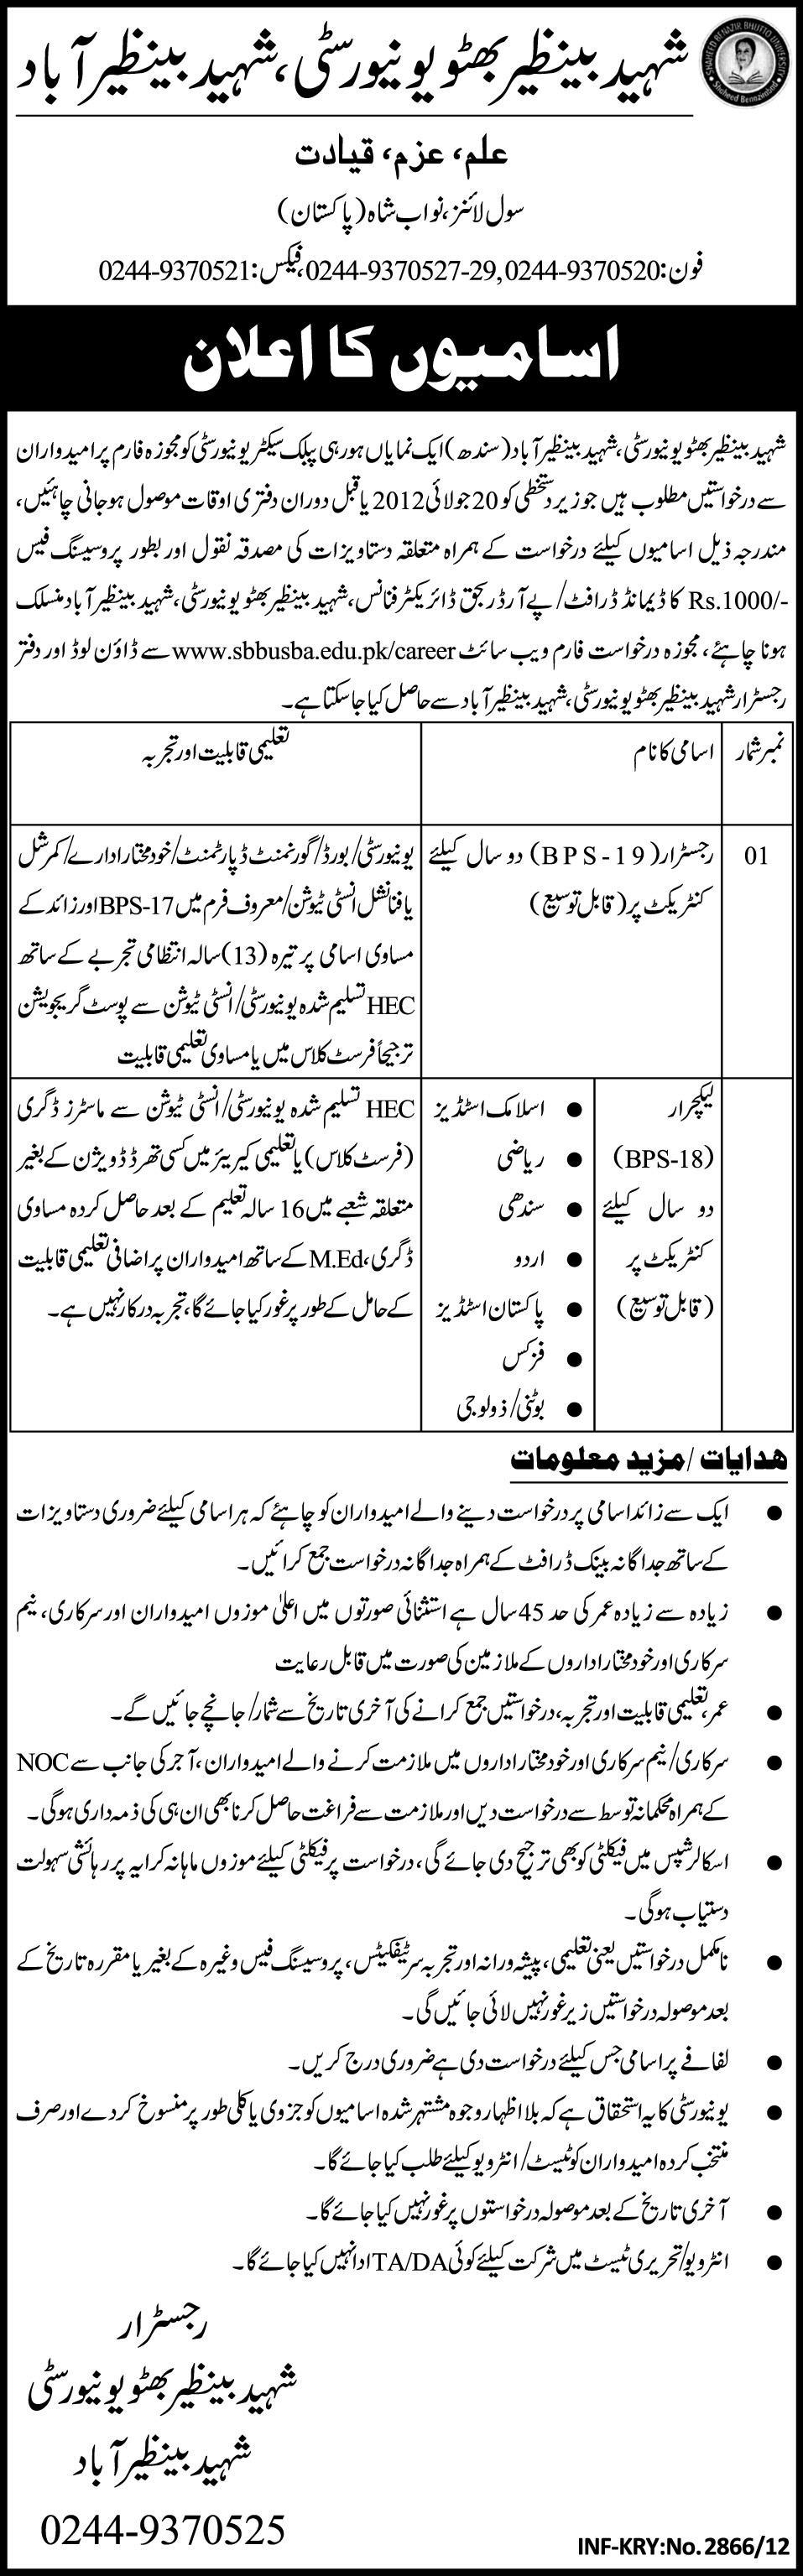 jobs in benazir bhutto university Shaheed Mohtarma Benazir Bhutto Medical College Admissions 2014